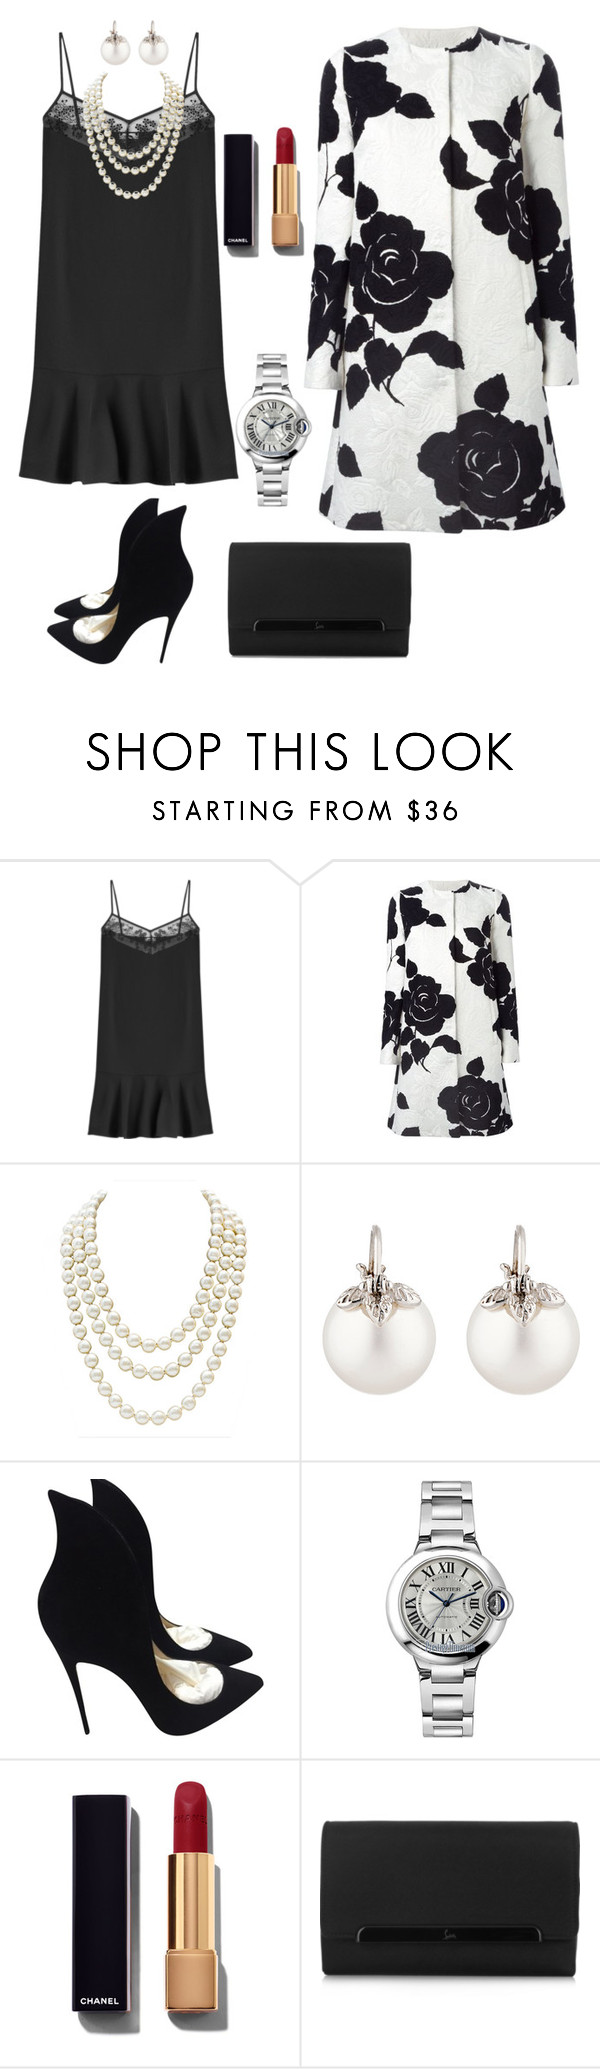 """""""Glamour!"""" by jasive-asseff-jamous ❤ liked on Polyvore featuring Carven, Dolce&Gabbana, Chanel, Samira 13, Christian Louboutin, Cartier, women's clothing, women's fashion, women and female"""